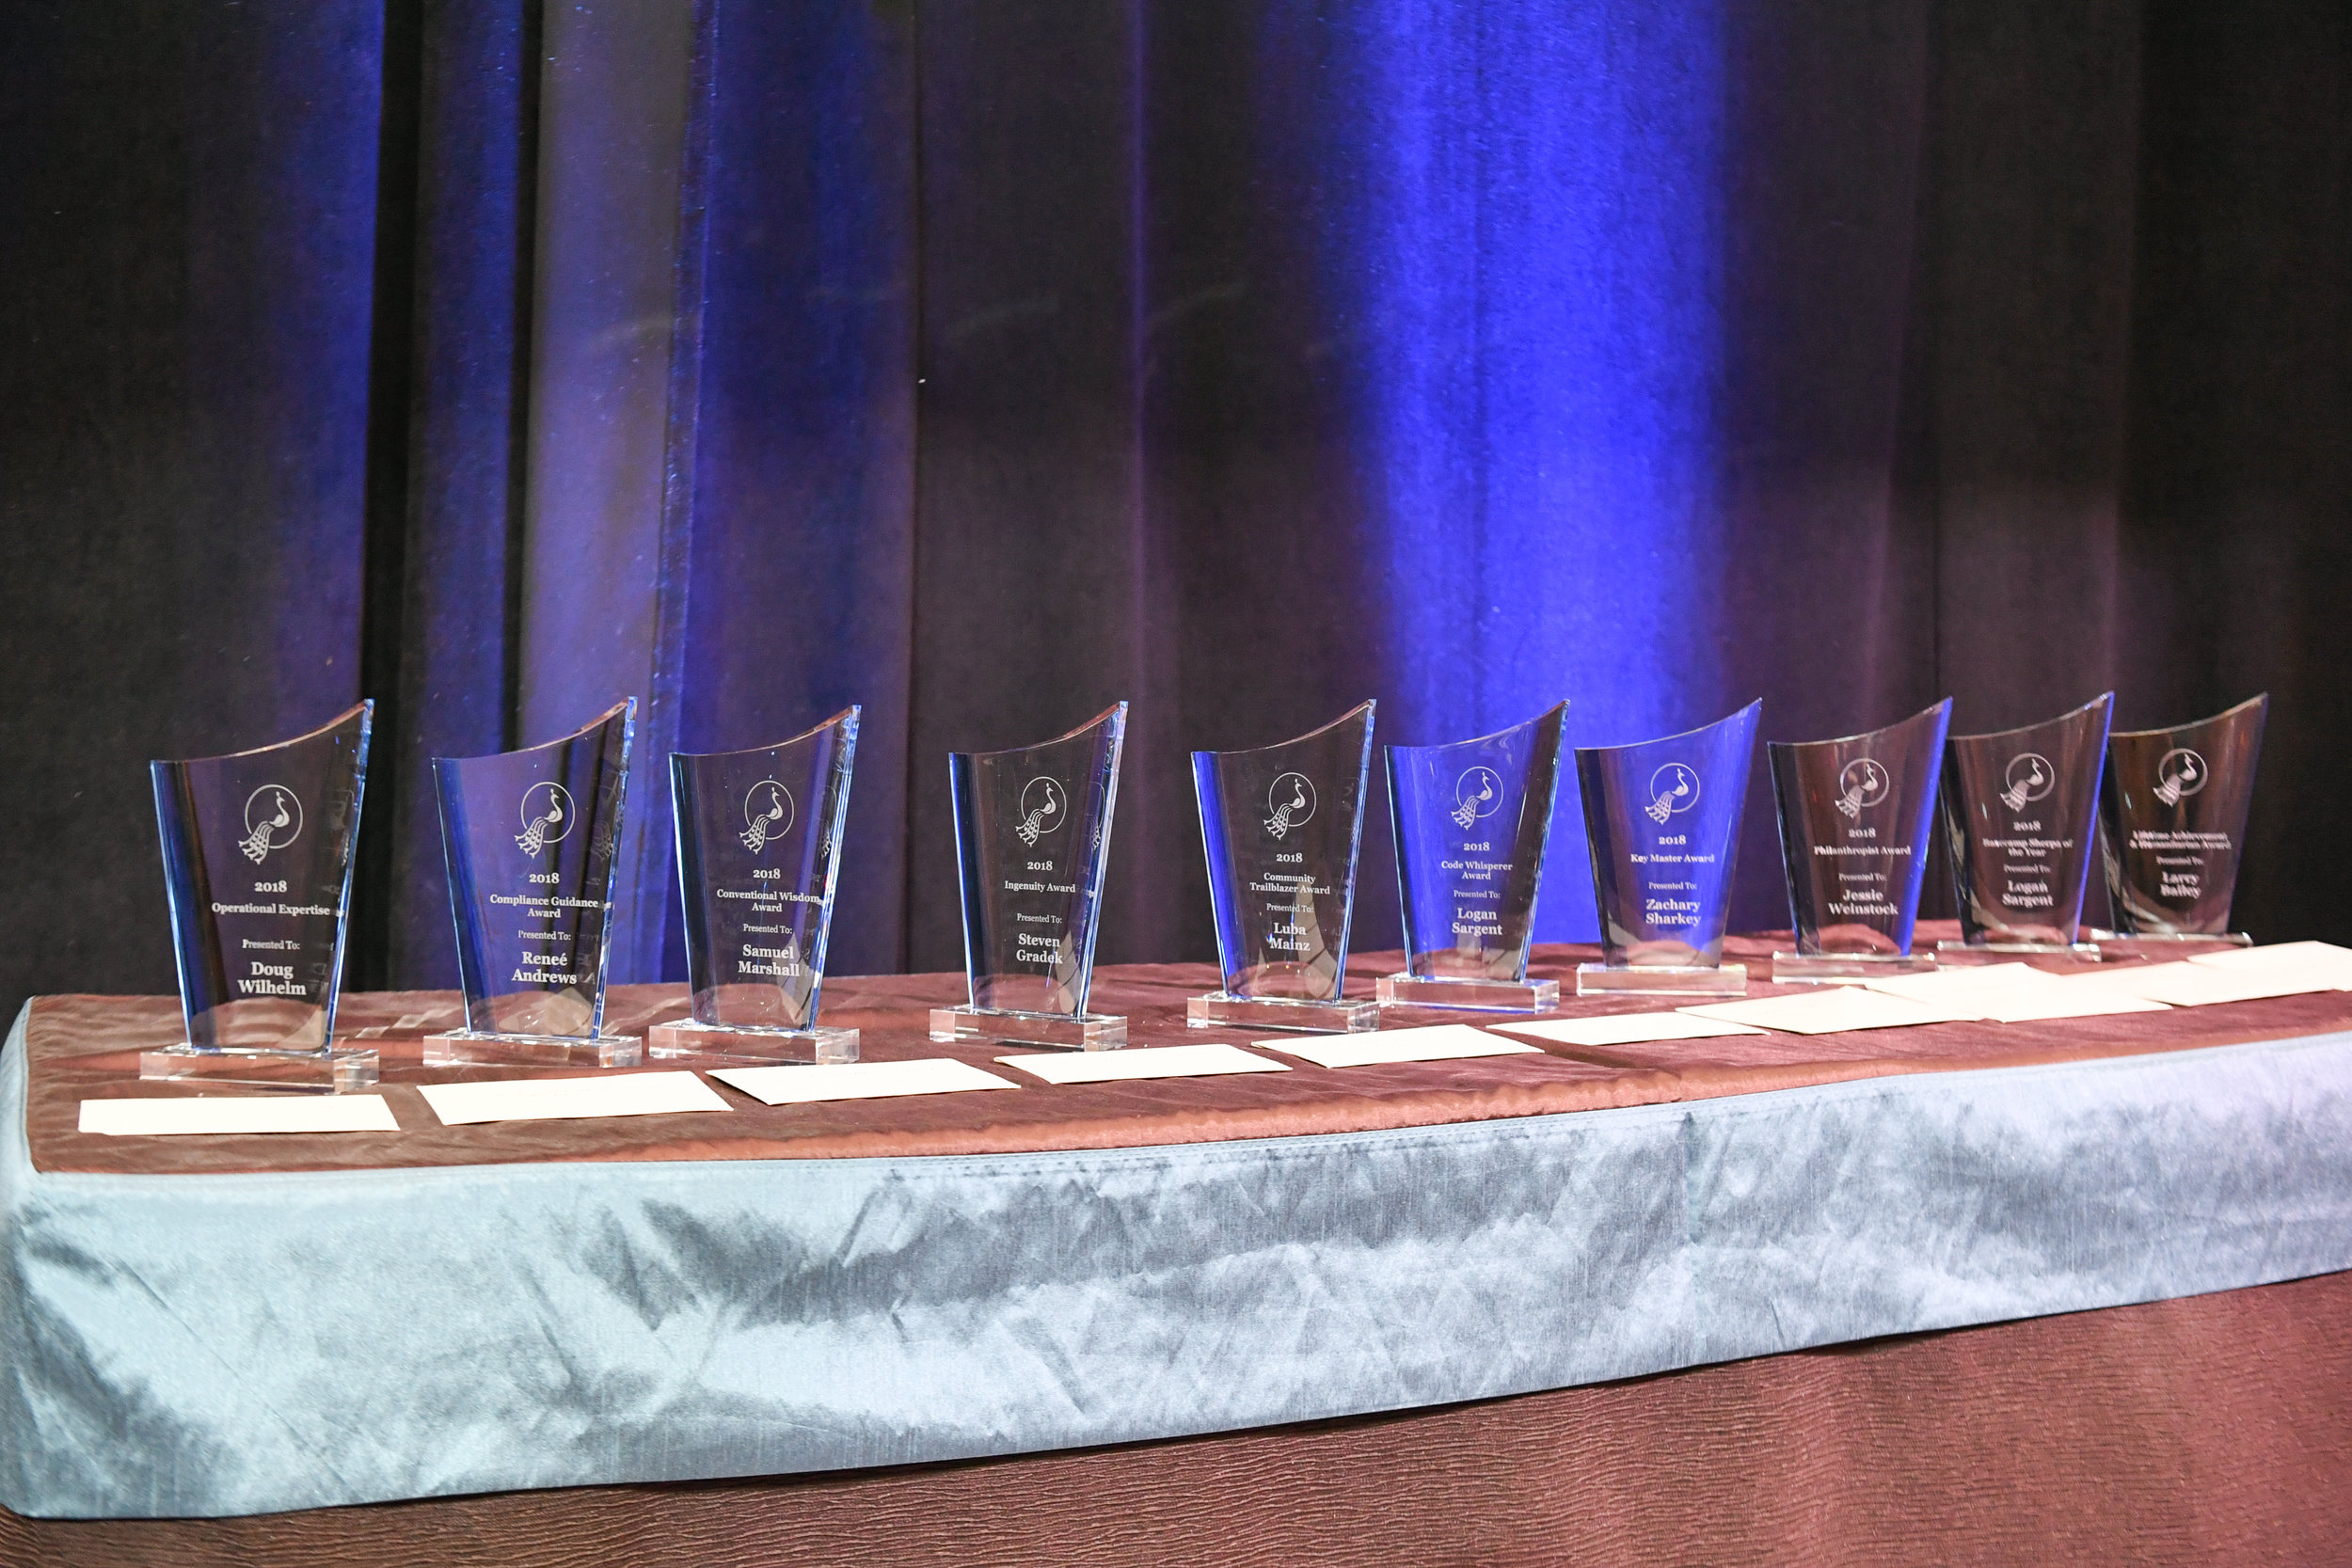 Pictured: Last year's Awards given out at the 2018 EBS held at the Cosmopolitan in Vegas